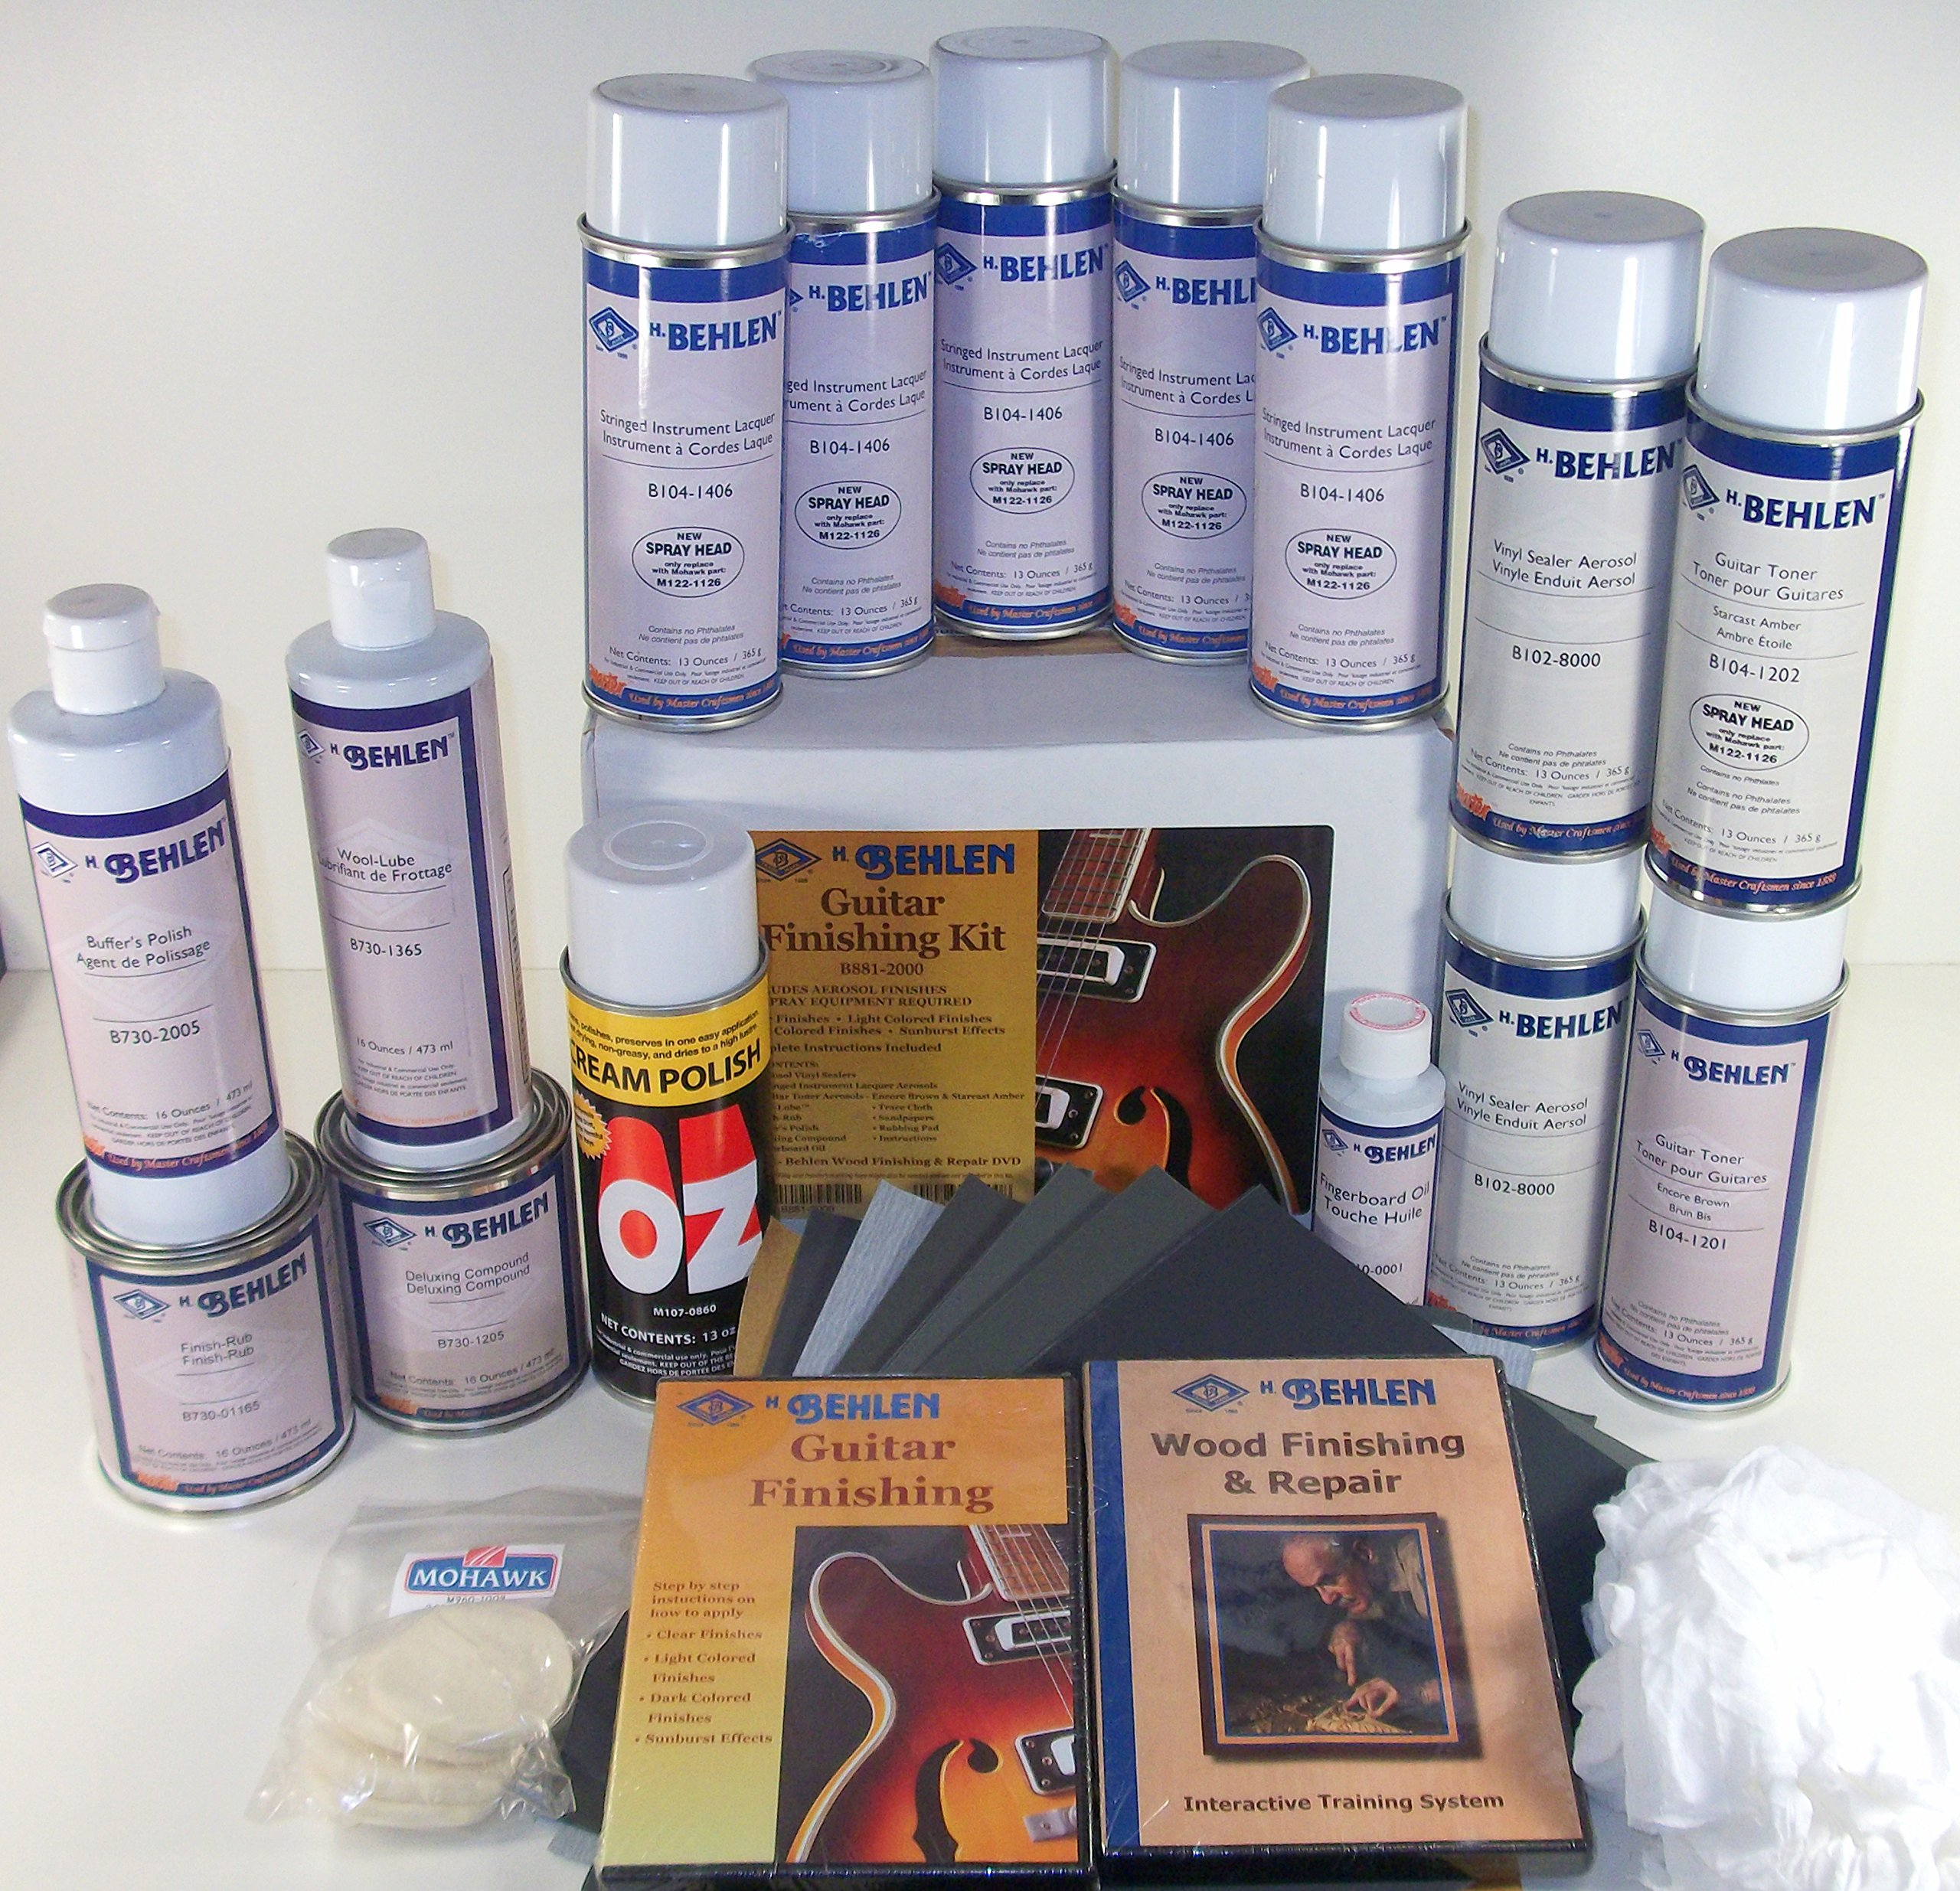 Behlen Guitar Finishing Kit ''Get Professional Results'' With OZ Polish